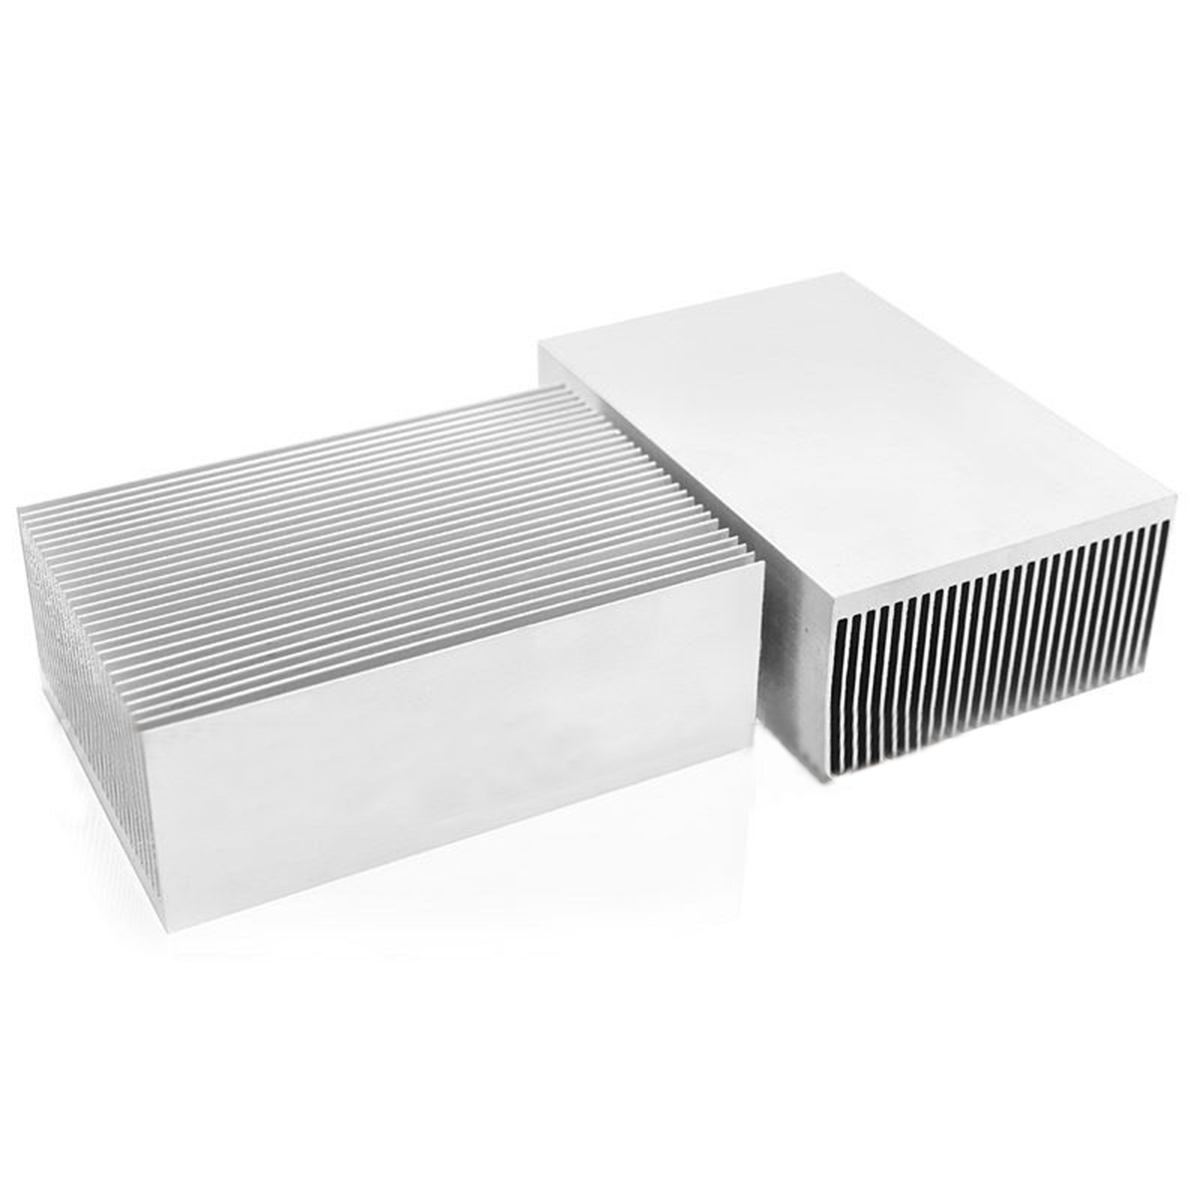 1pc Large Big Aluminum Heatsink Cooling Heat Sink Radiator 100mm*69mm*37mm for Led High Power Amplifier Transistor Mayitr jeyi cooling warship copper m 2 heatsink nvme heat sink ngff m 2 2280 aluminum sheet thermal conductivity silicon wafer cooling